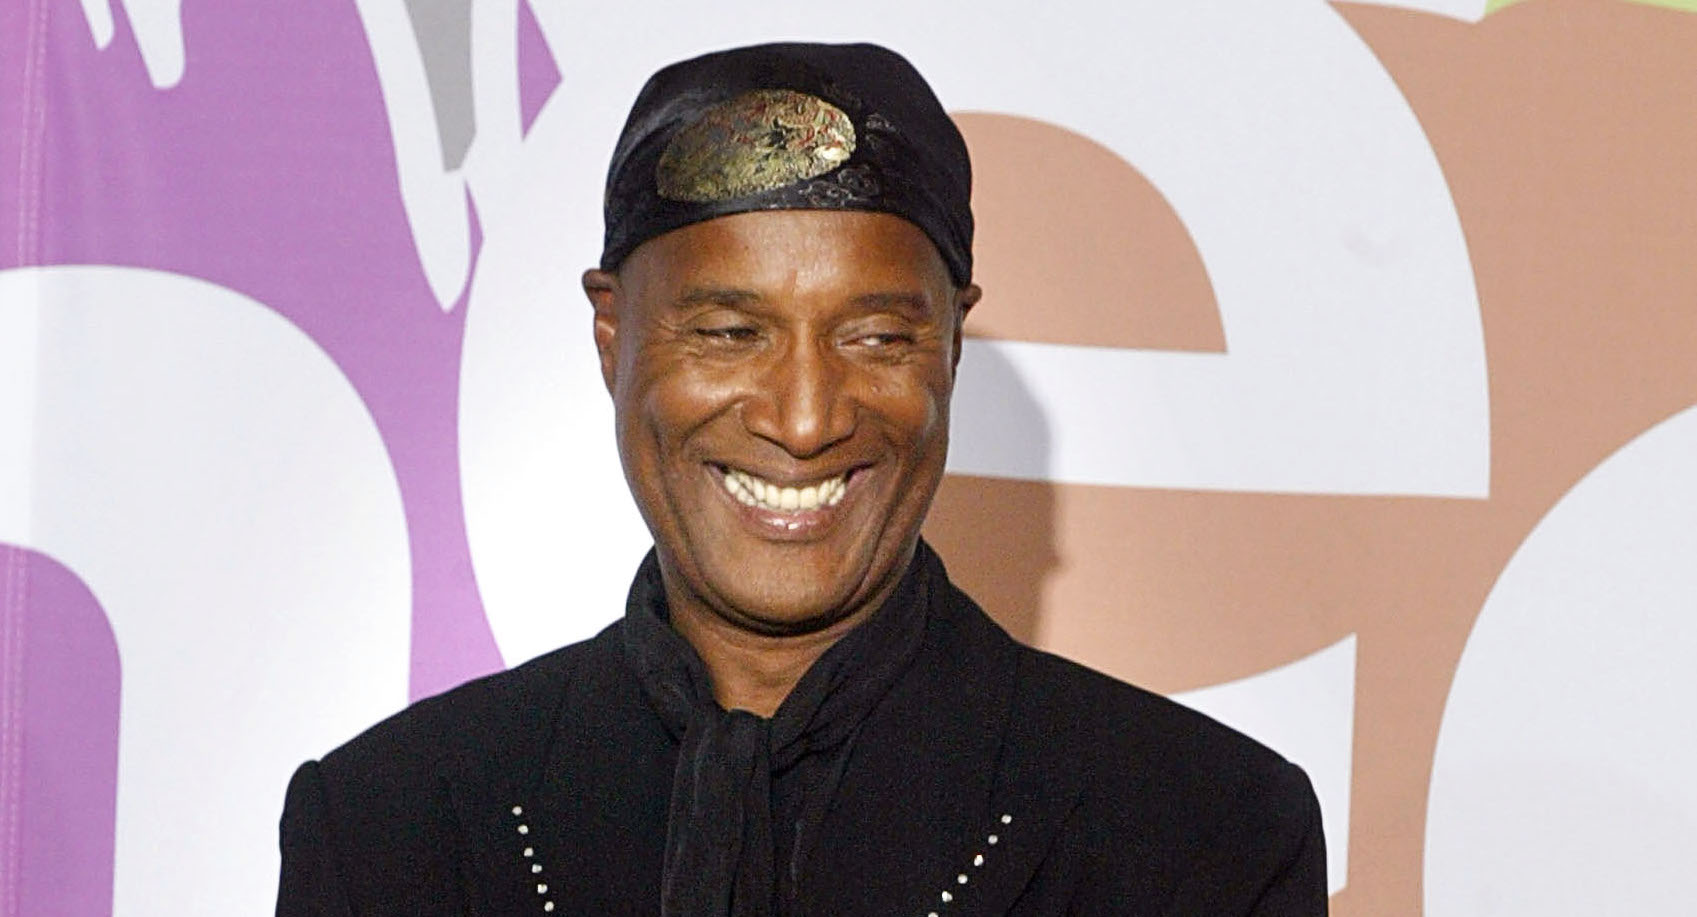 Paul Mooney, Trailblazing Comedian and Actor, Dies at 79